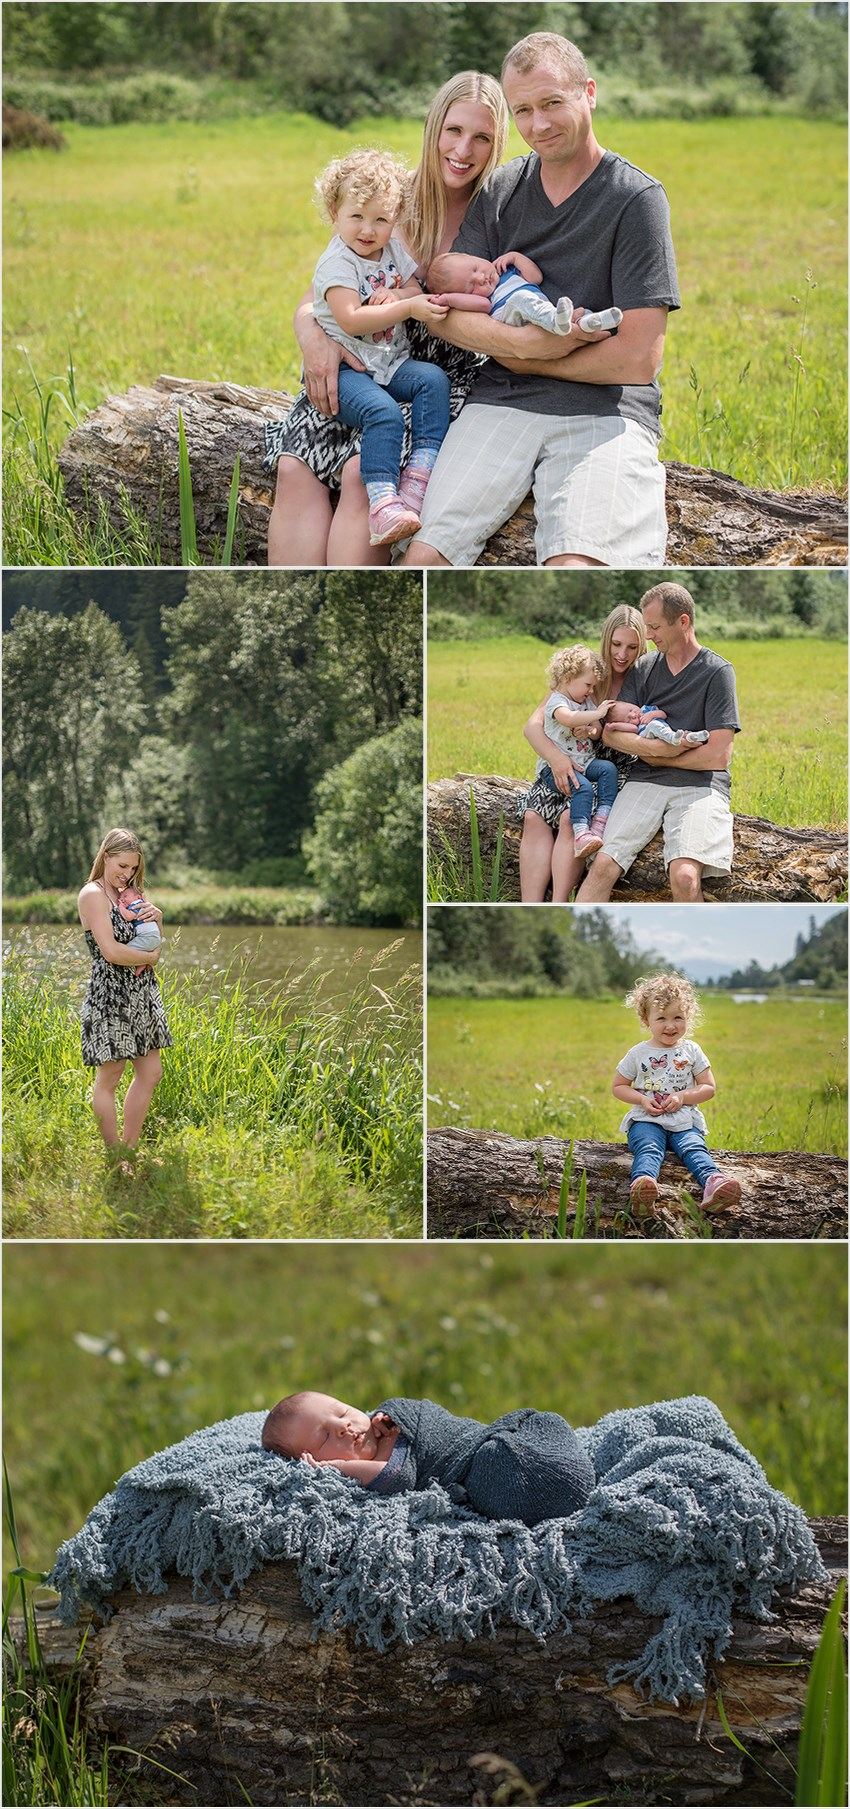 Baby Derrick Abbotsford Outdoor Newborn Photographer 001 (Side 1)